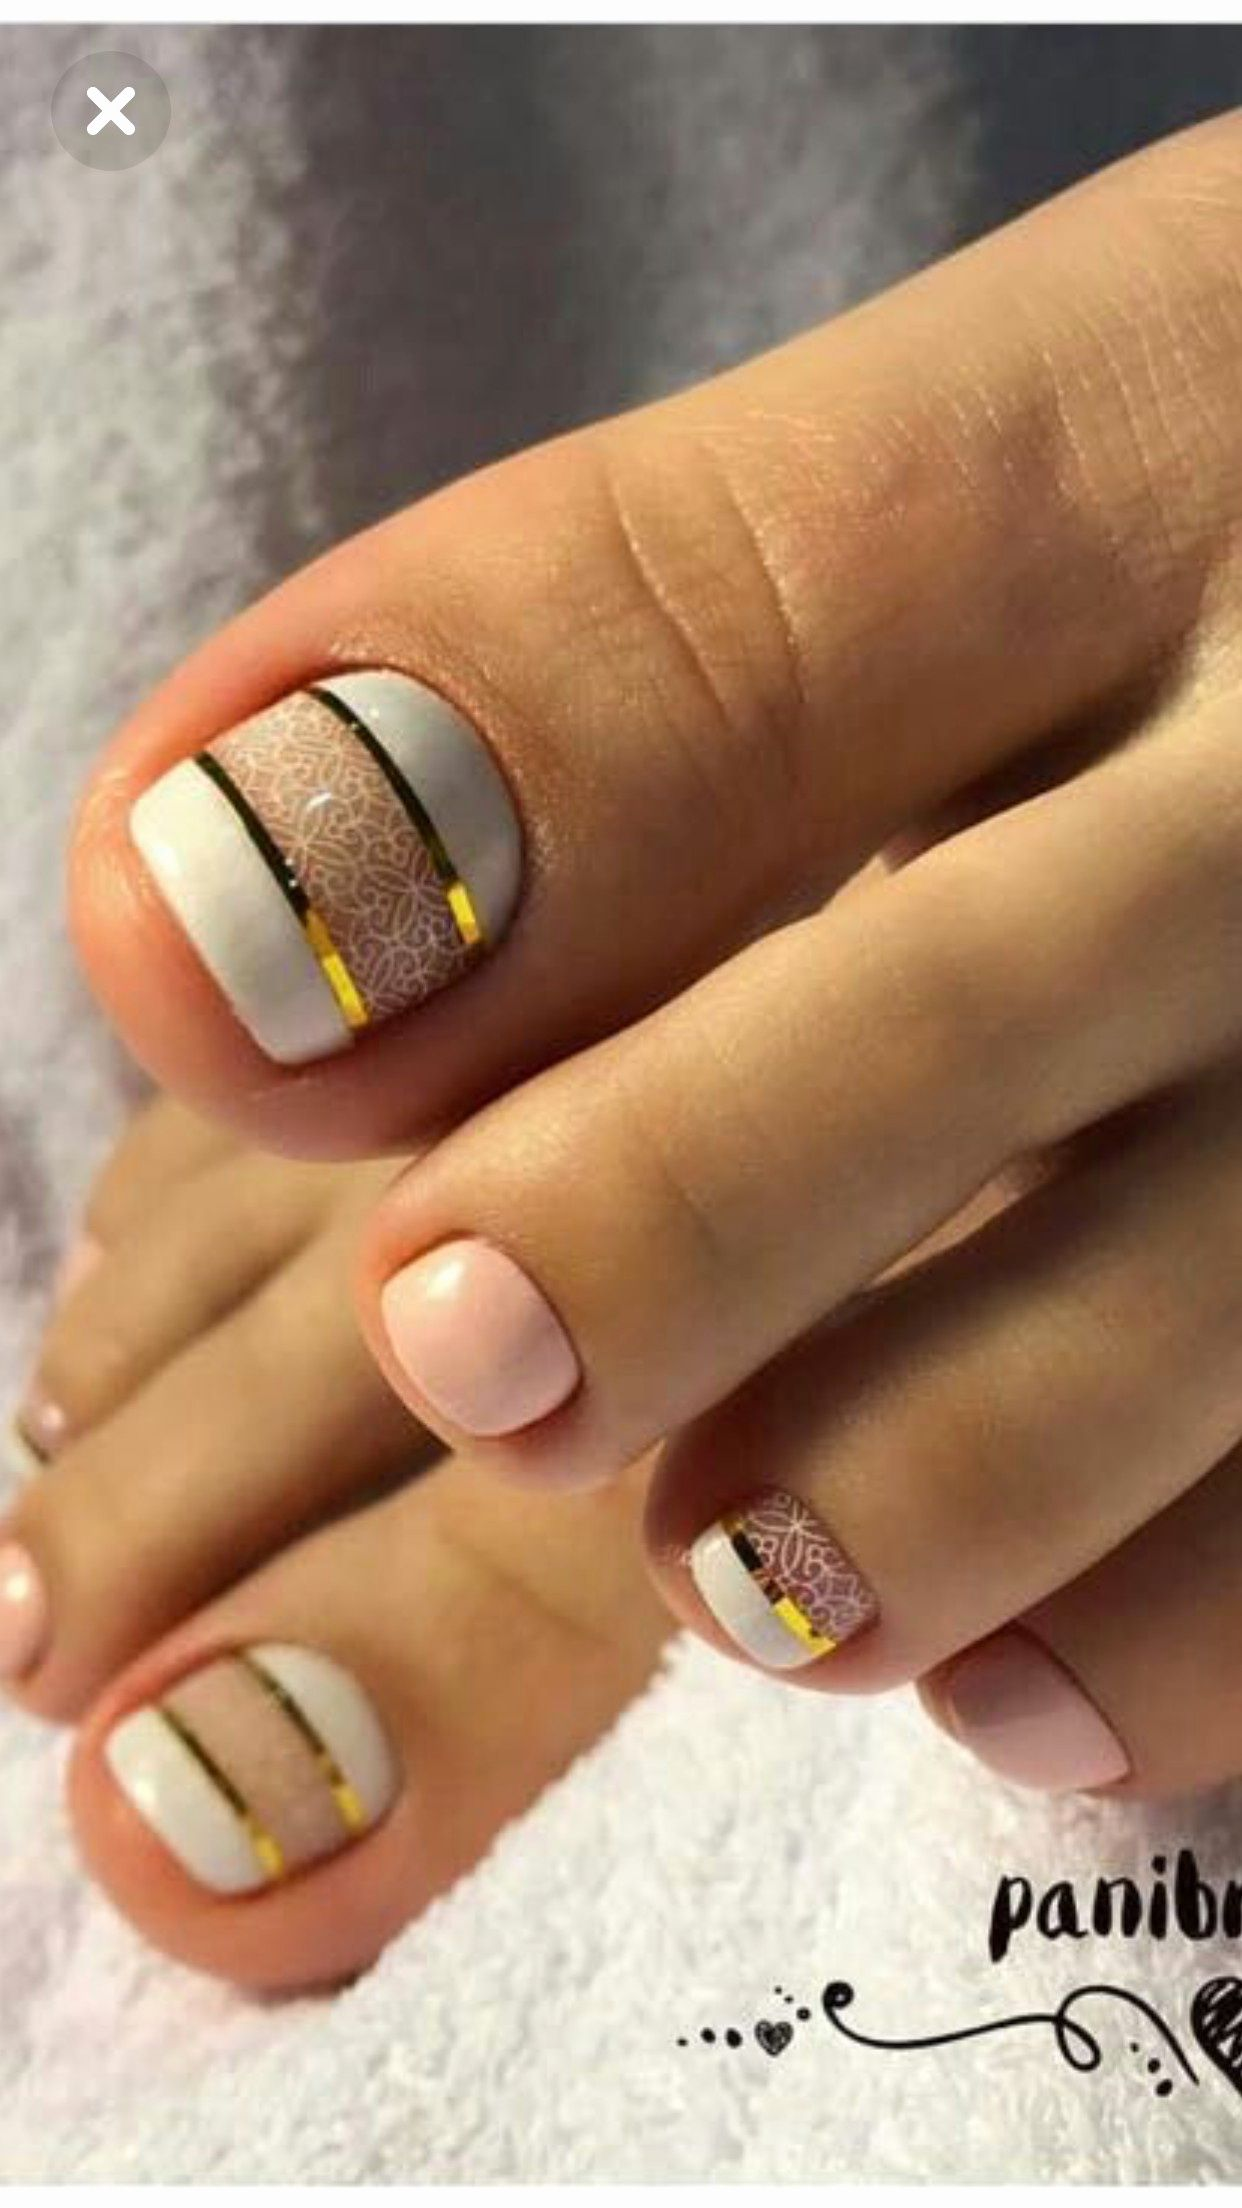 22 Best Of Nail Designs For Toes Gel Toe Nail Designs Beautiful Fine Gel Toe Nail Designs 22 Be Summer Toe Nails Simple Toe Nails Pedicure Designs Toenails